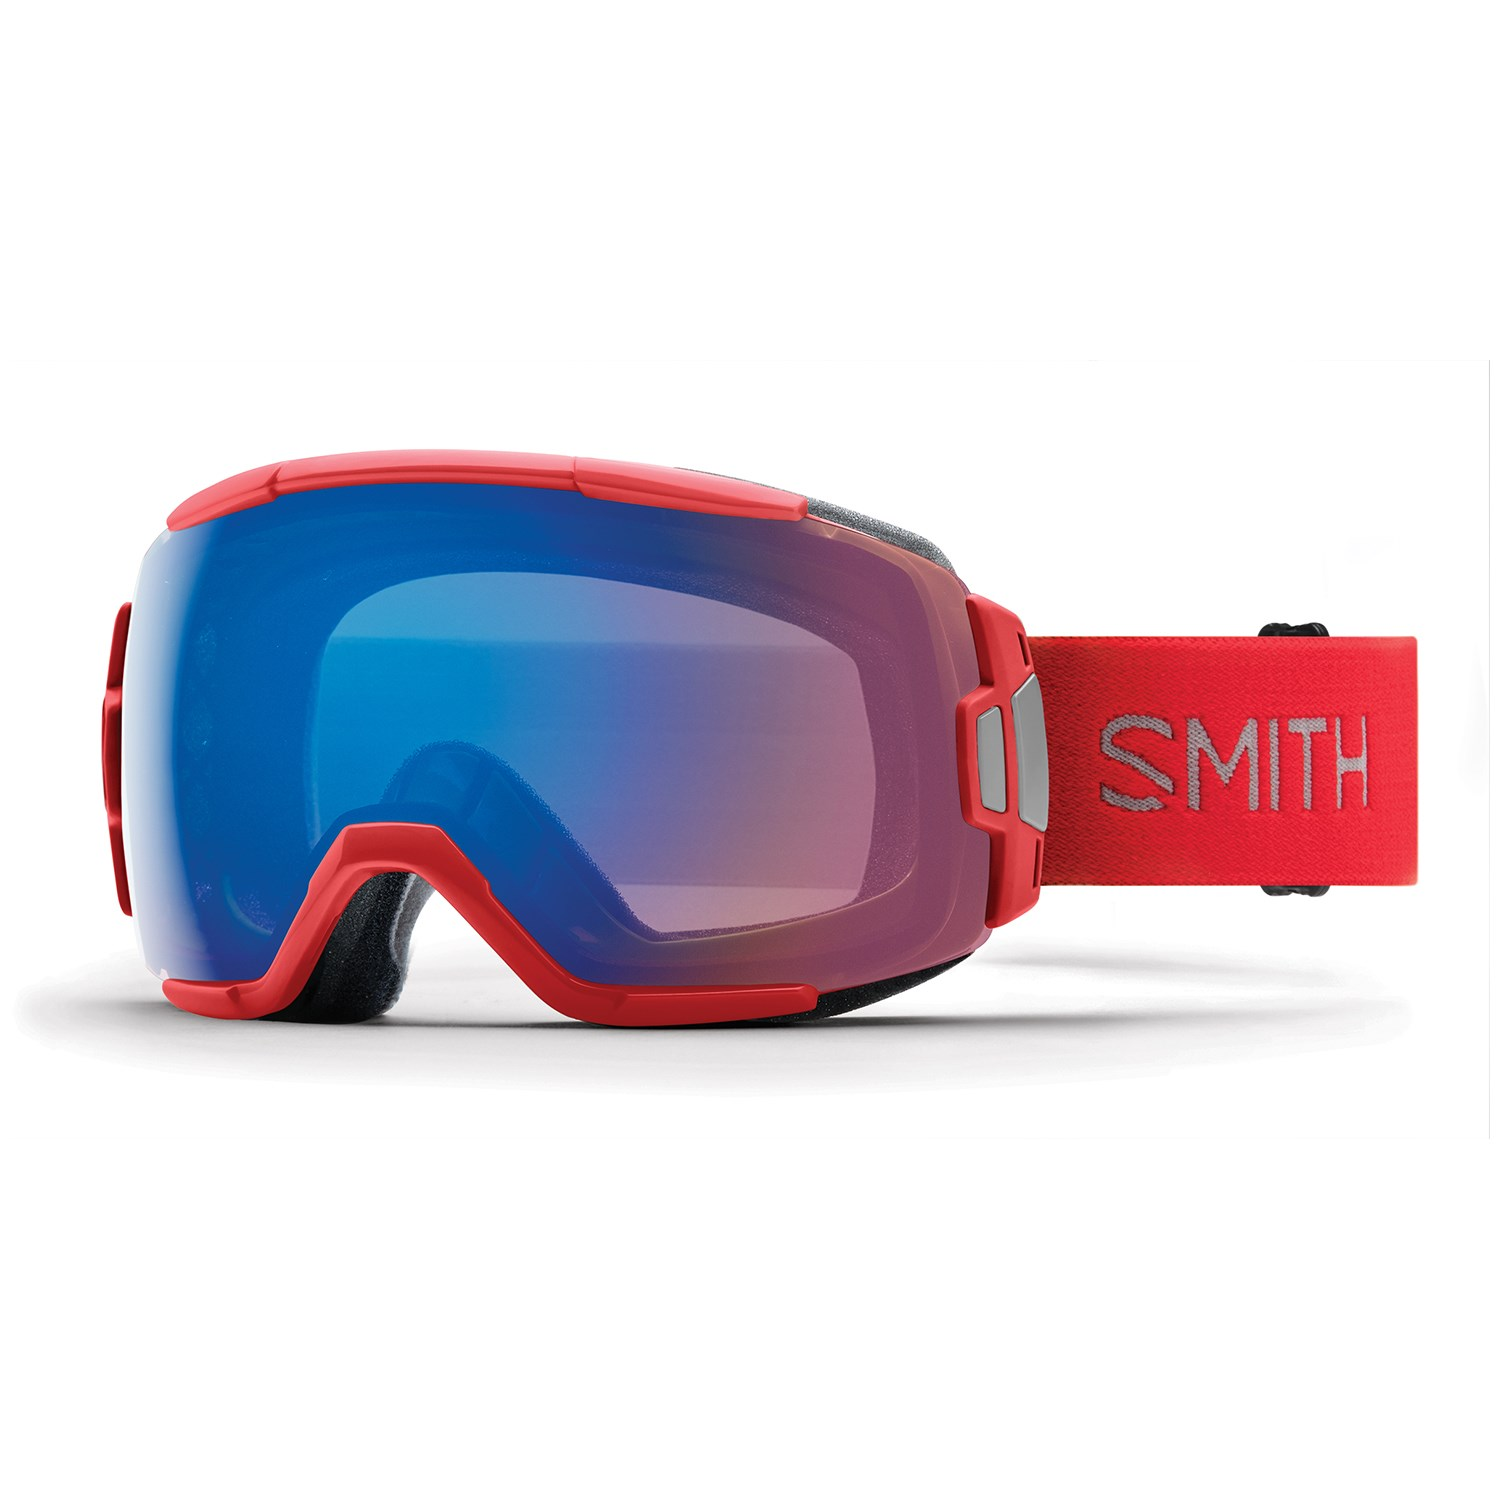 741e847220182 Smith Vice Sunglasses Polarized